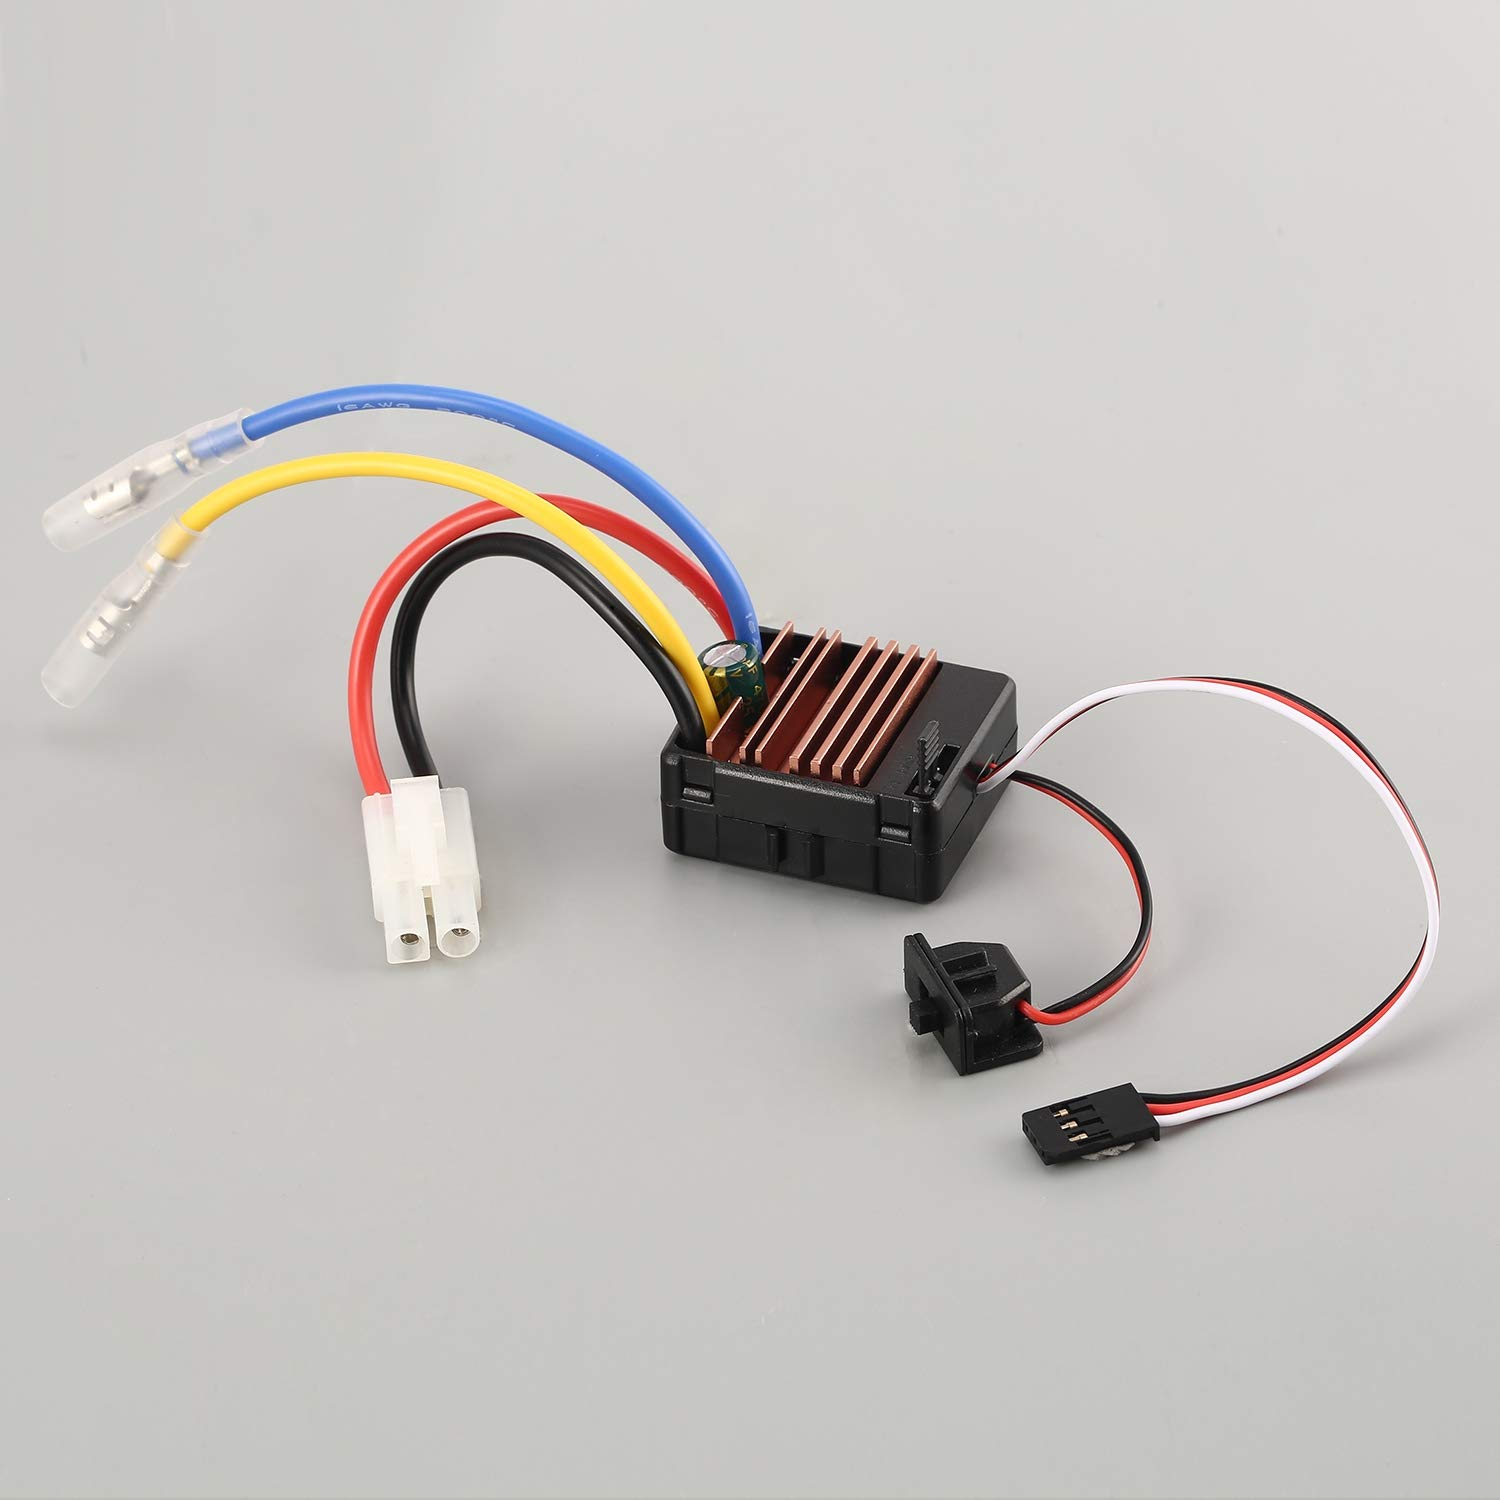 Amazon.com: 540 80T Brushed Motor 60A ESC for Axial SCX10 RC4WD D90 1/10 RC  Crawler Car Black: Toys & Games